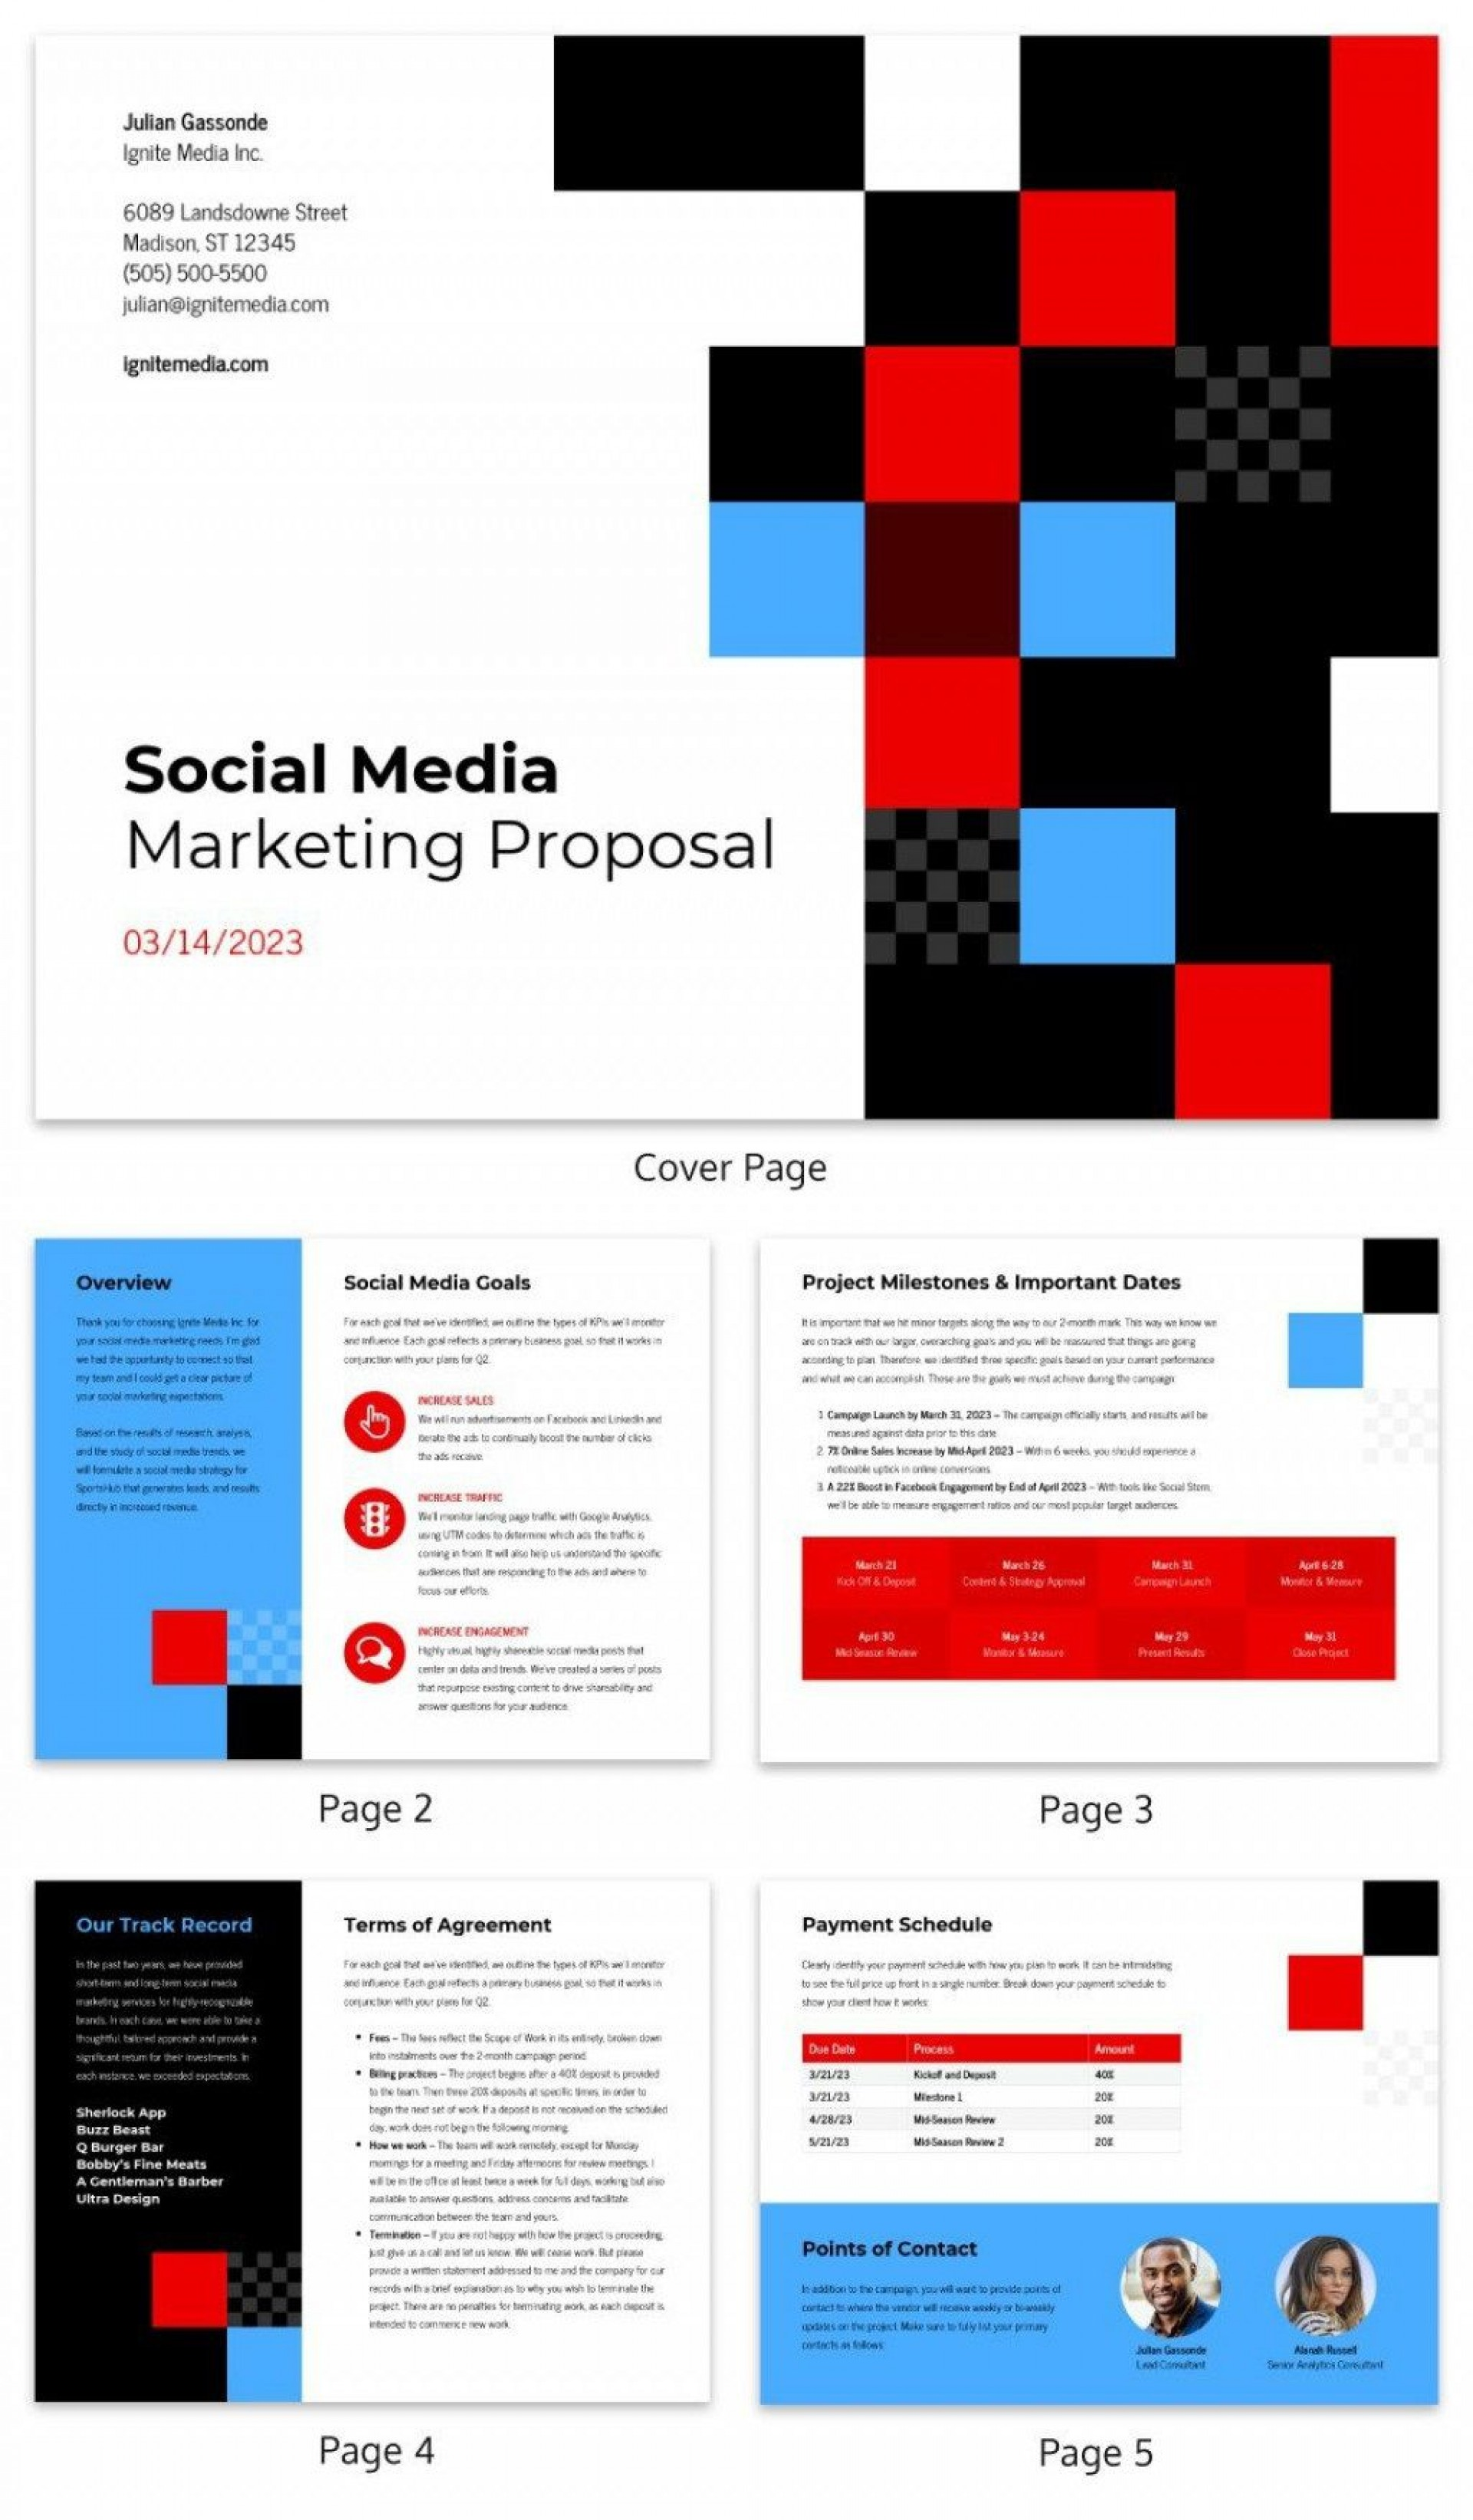 004 Fascinating Social Media Proposal Template Ppt High Def 1920